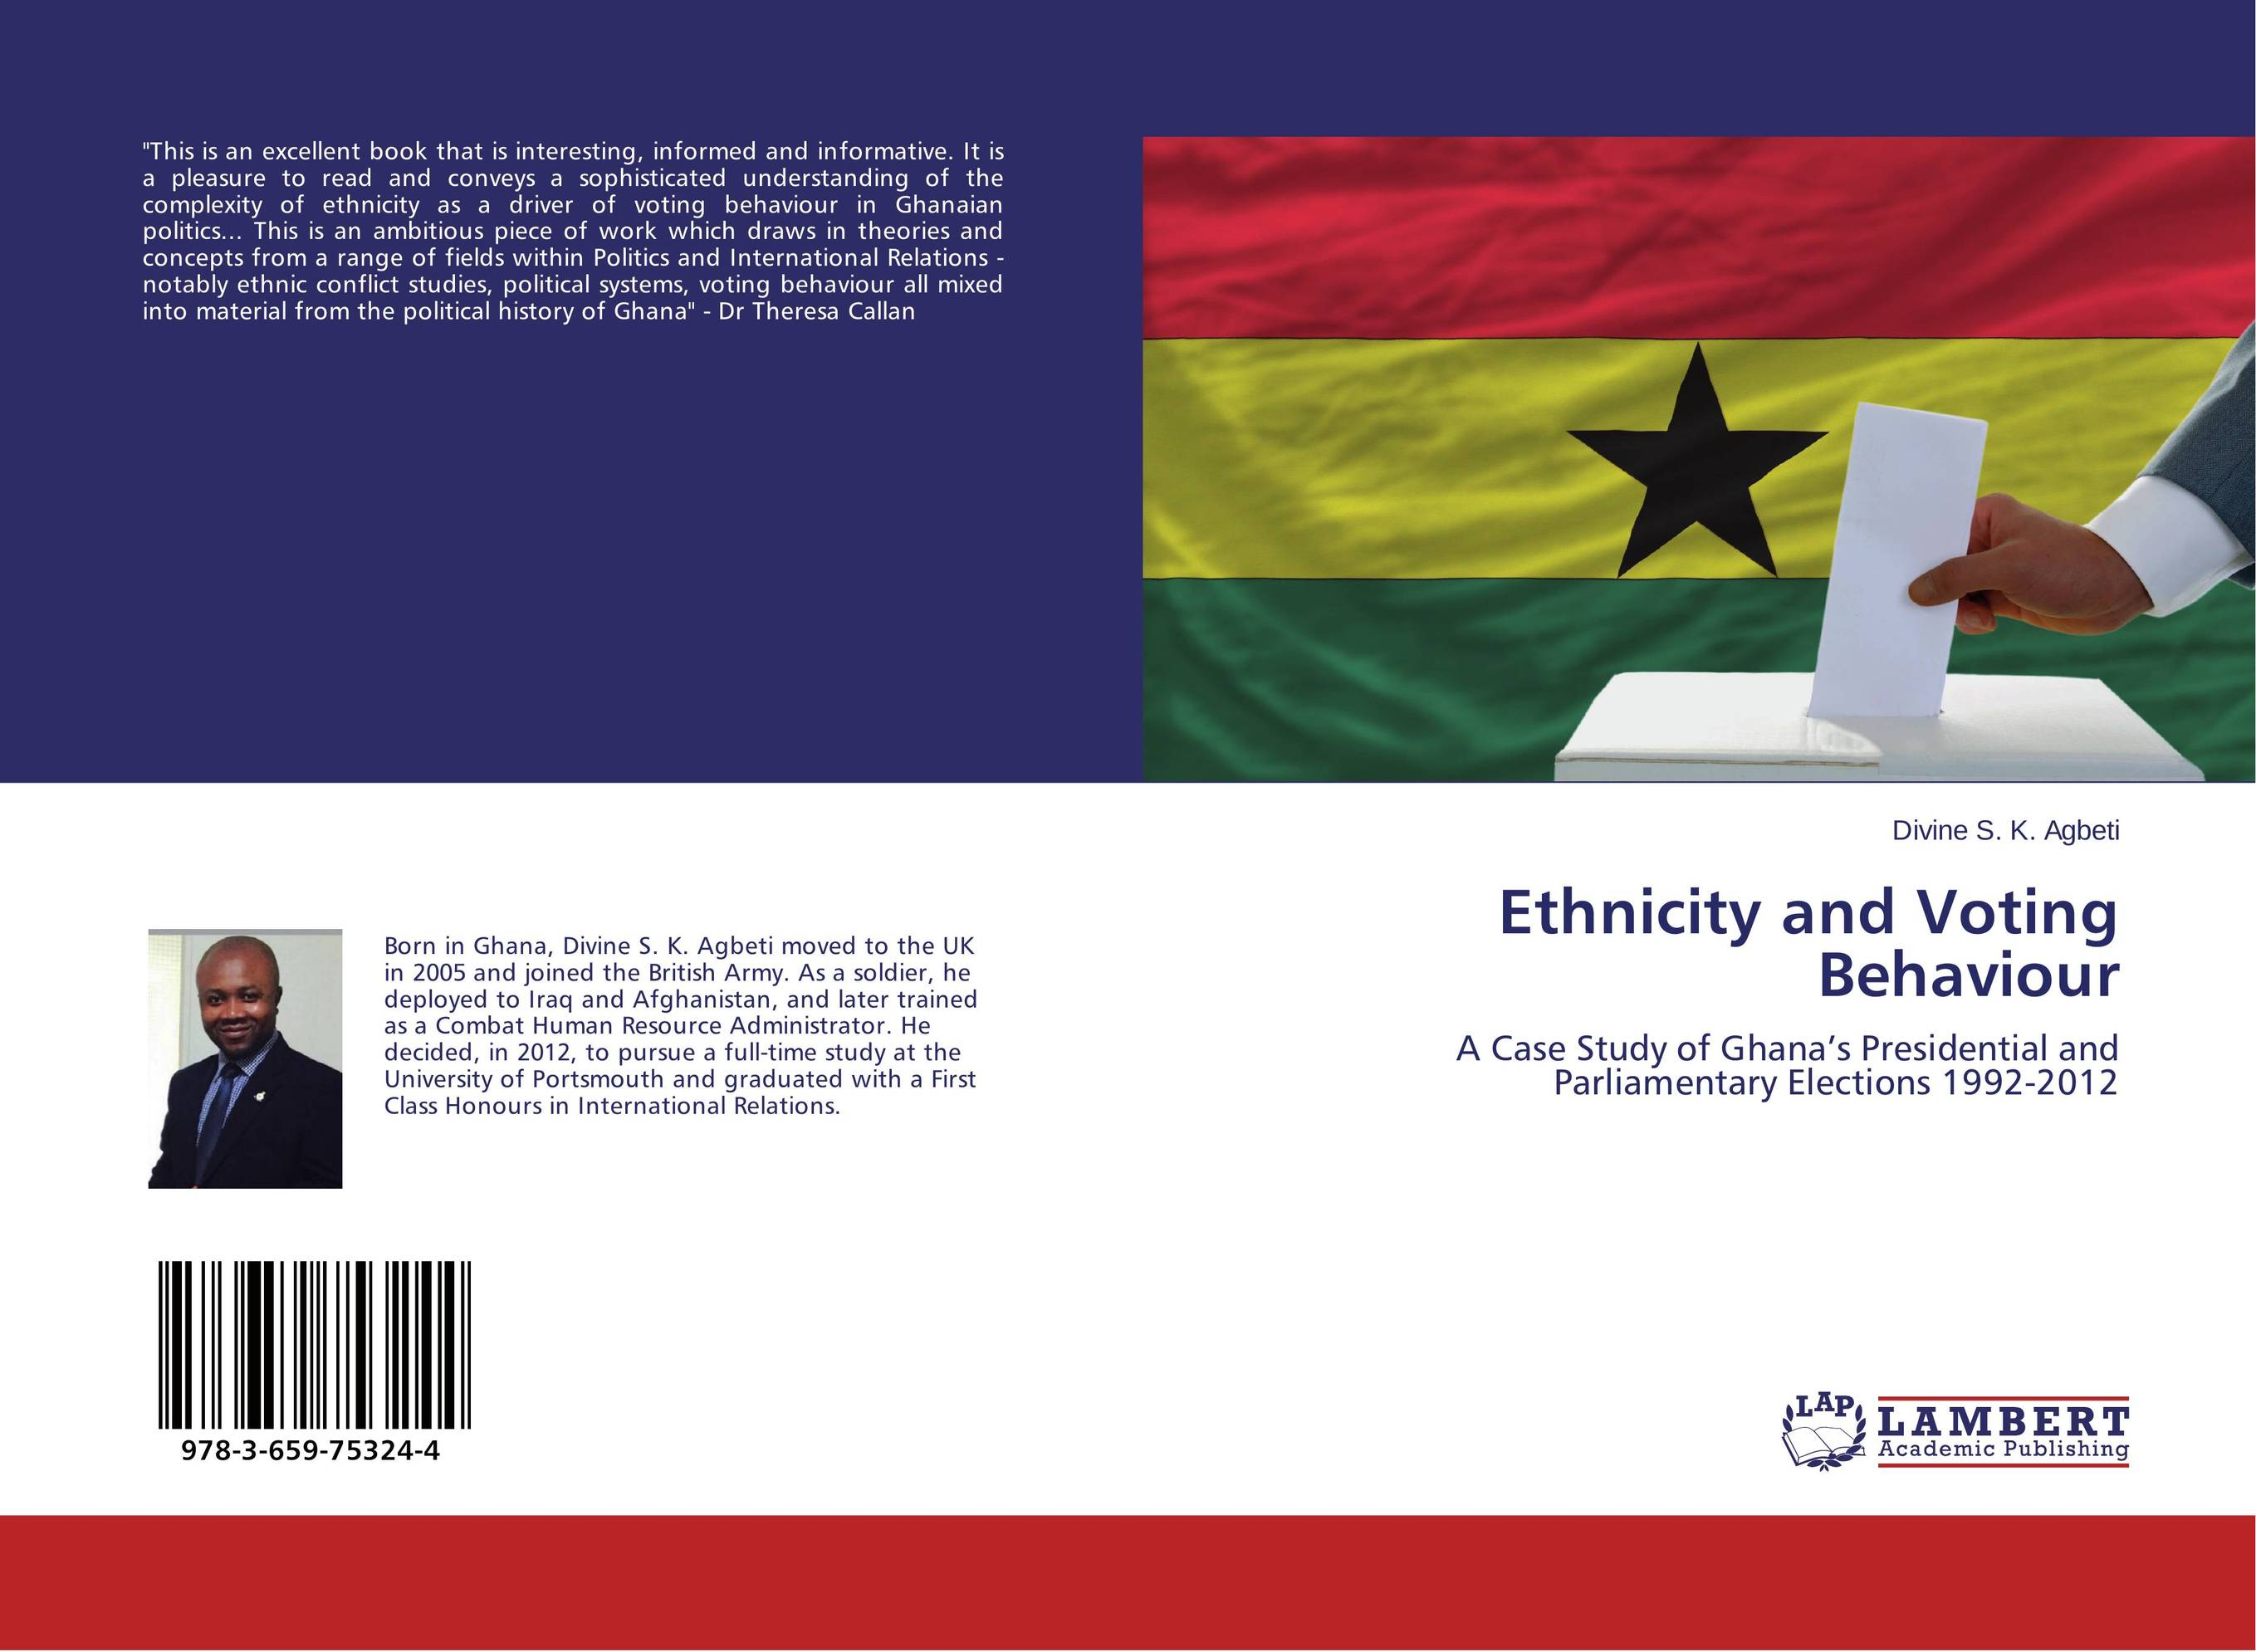 Ethnicity and Voting Behaviour trans border ethnic hegemony and political conflict in africa